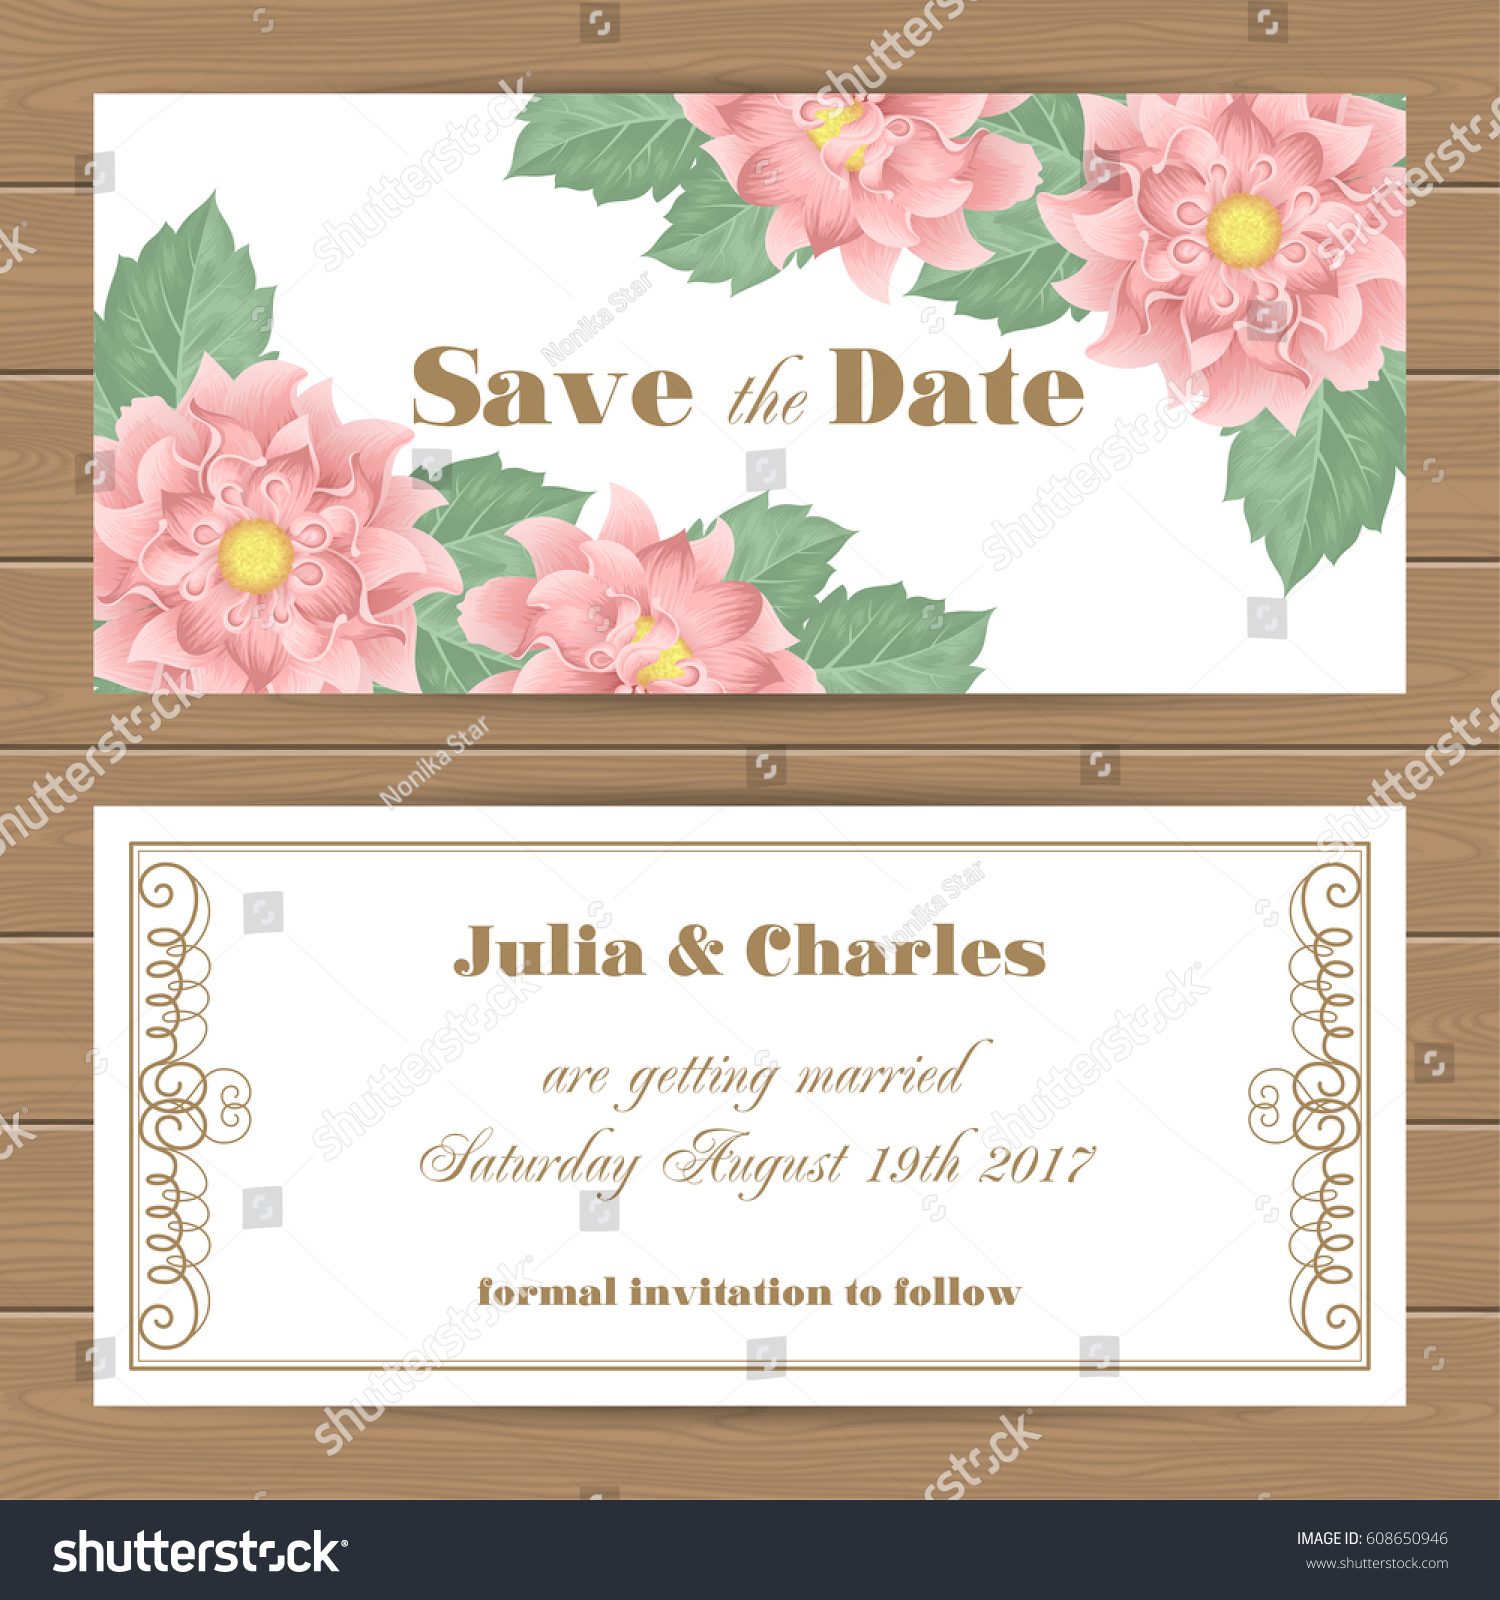 save date card wedding invitation template stock vector 608650946 shutterstock. Black Bedroom Furniture Sets. Home Design Ideas